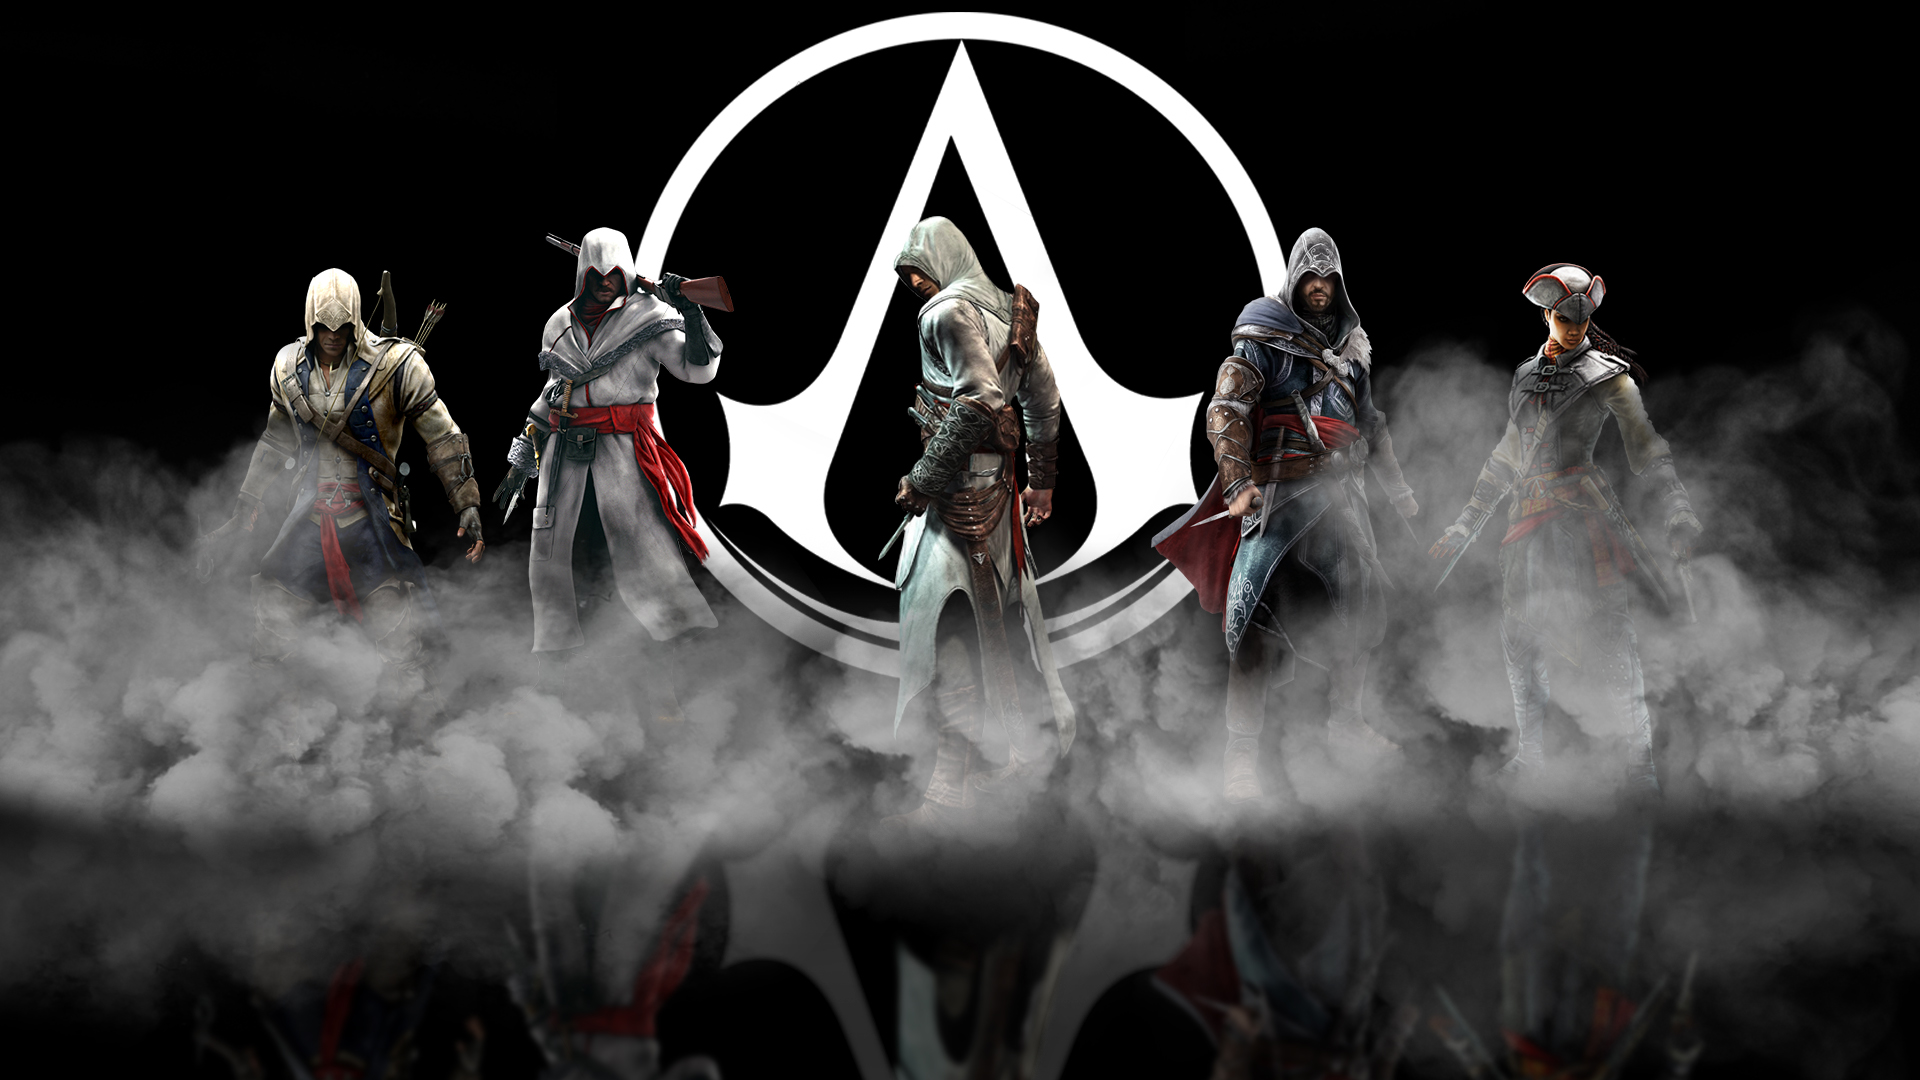 Assassins creed wallpaper progress by messix on deviantart assassins creed wallpaper progress by messix assassins creed wallpaper progress by messix voltagebd Gallery